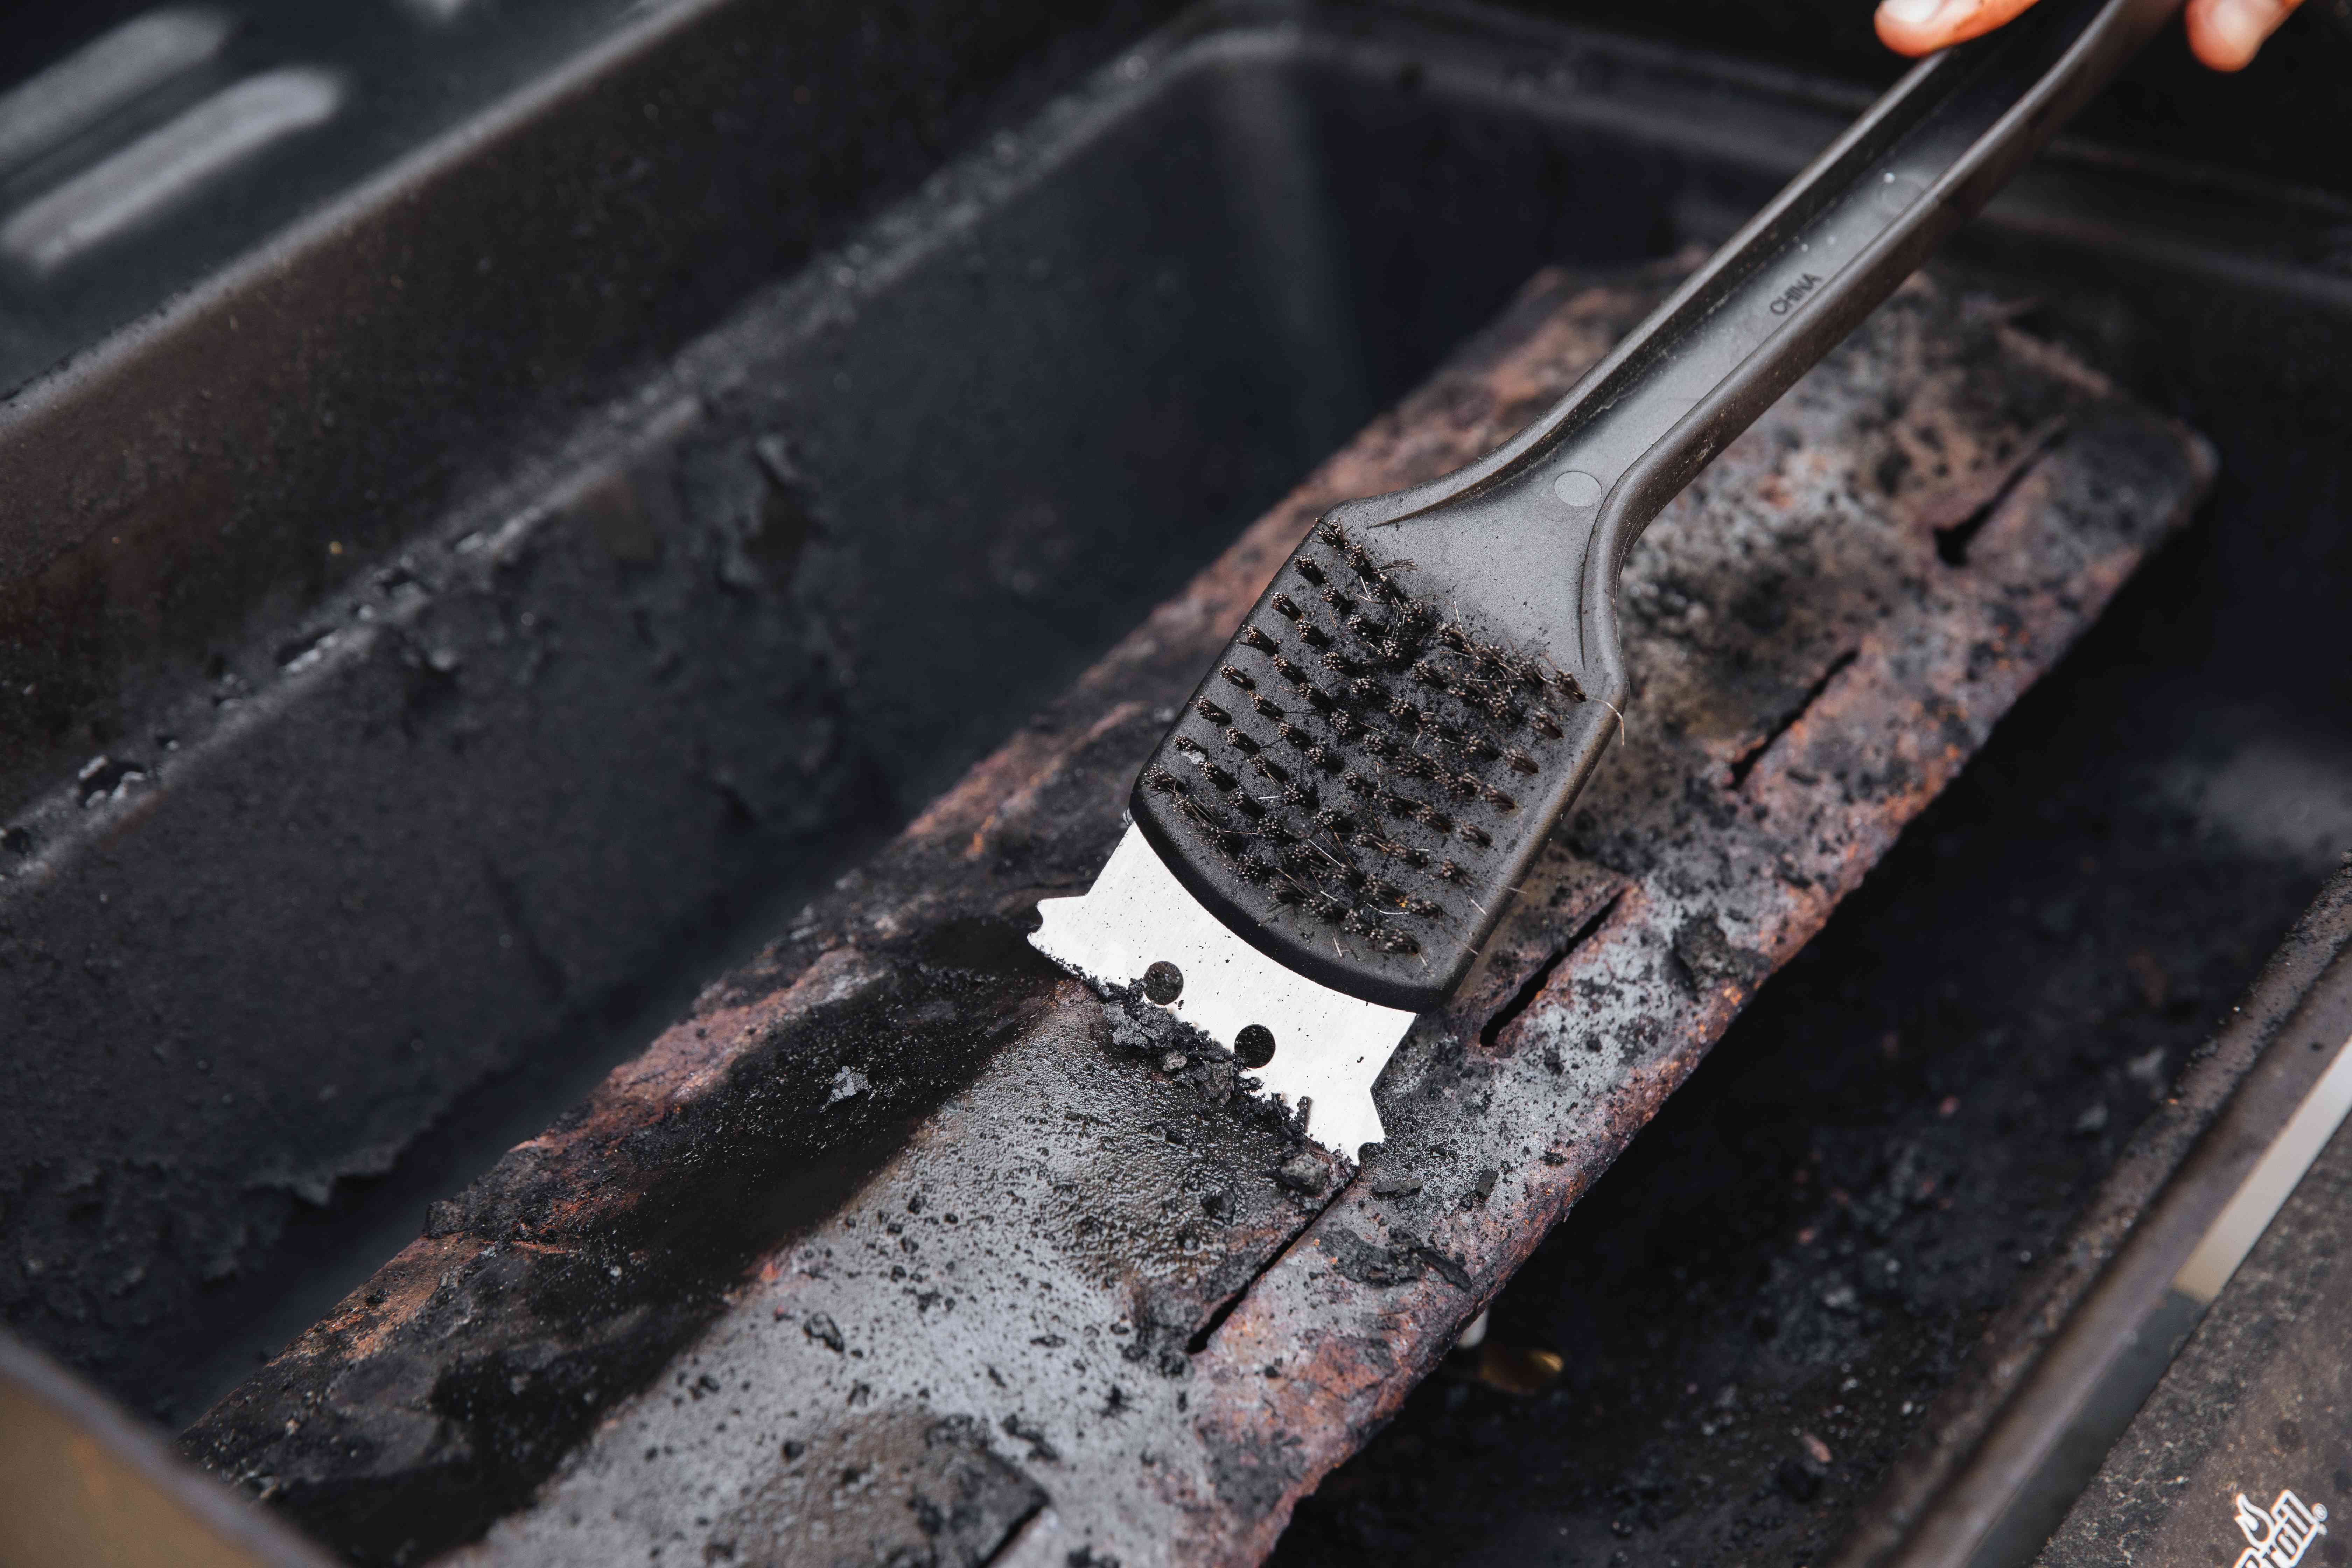 scraping ashes off of the grill